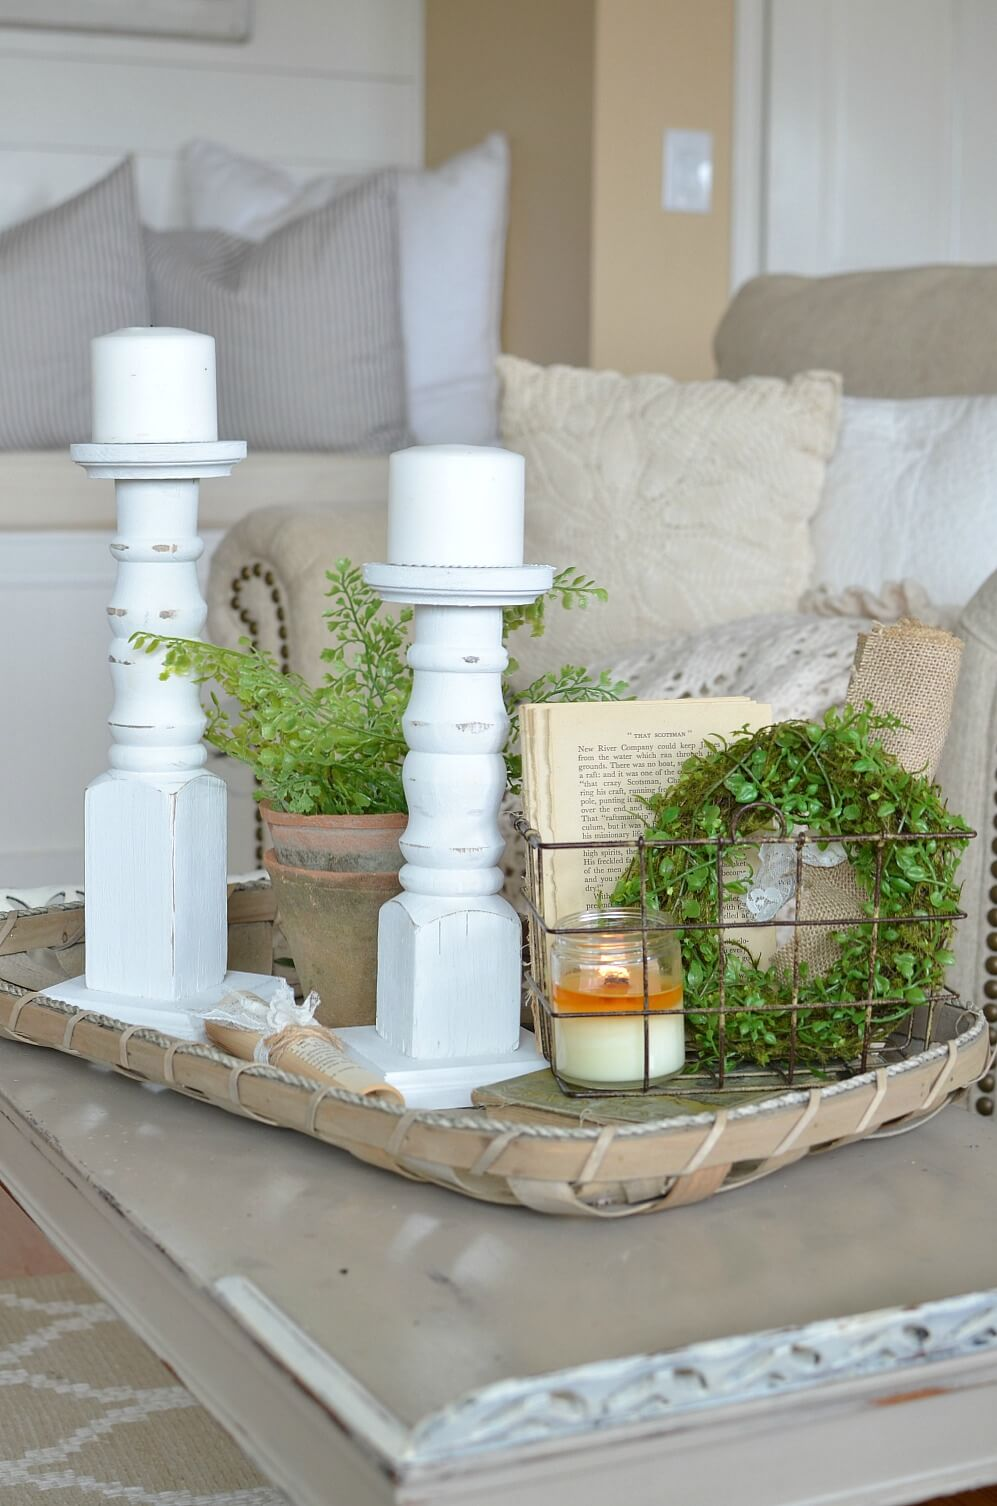 Tiered Garden Ideas